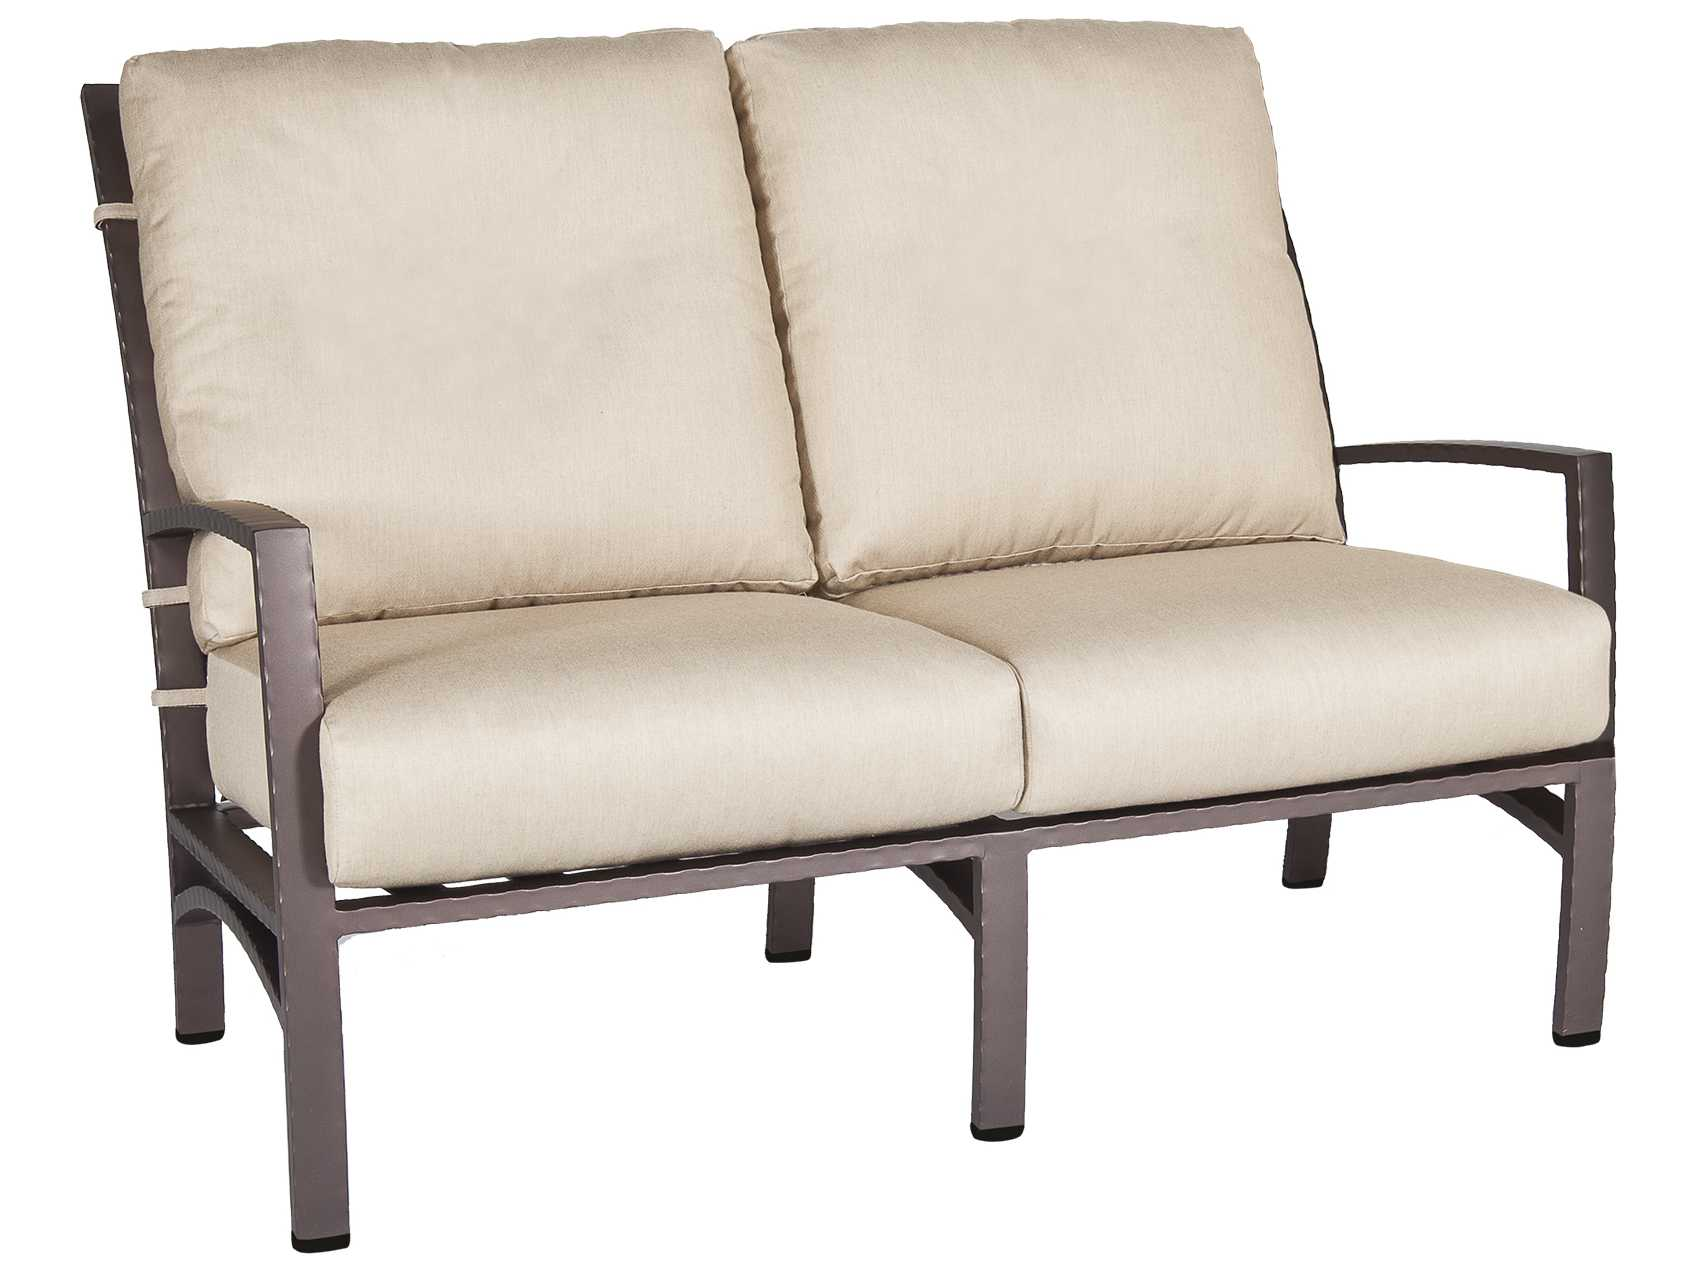 Ow Lee Sol Wrought Iron Loveseat 48115 2s